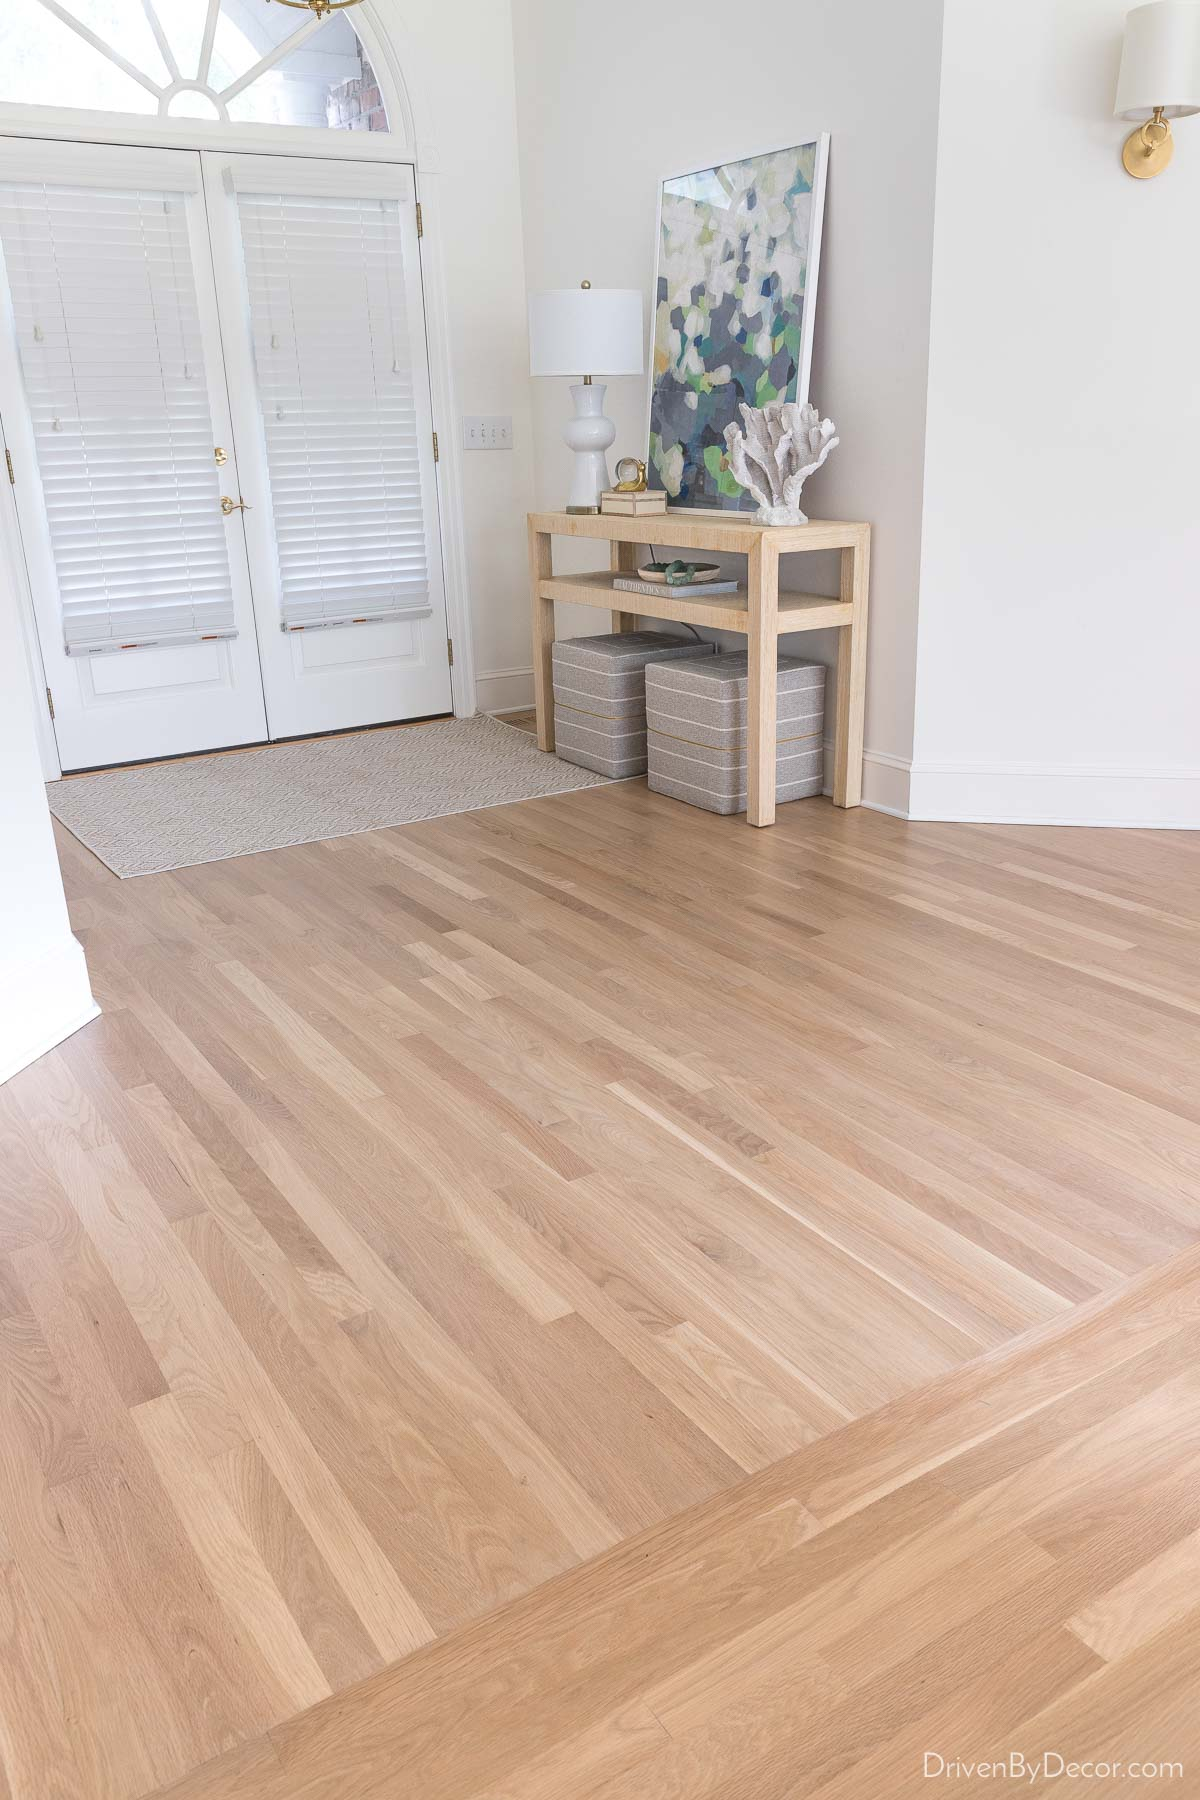 Our hardwood floors after refinishing!